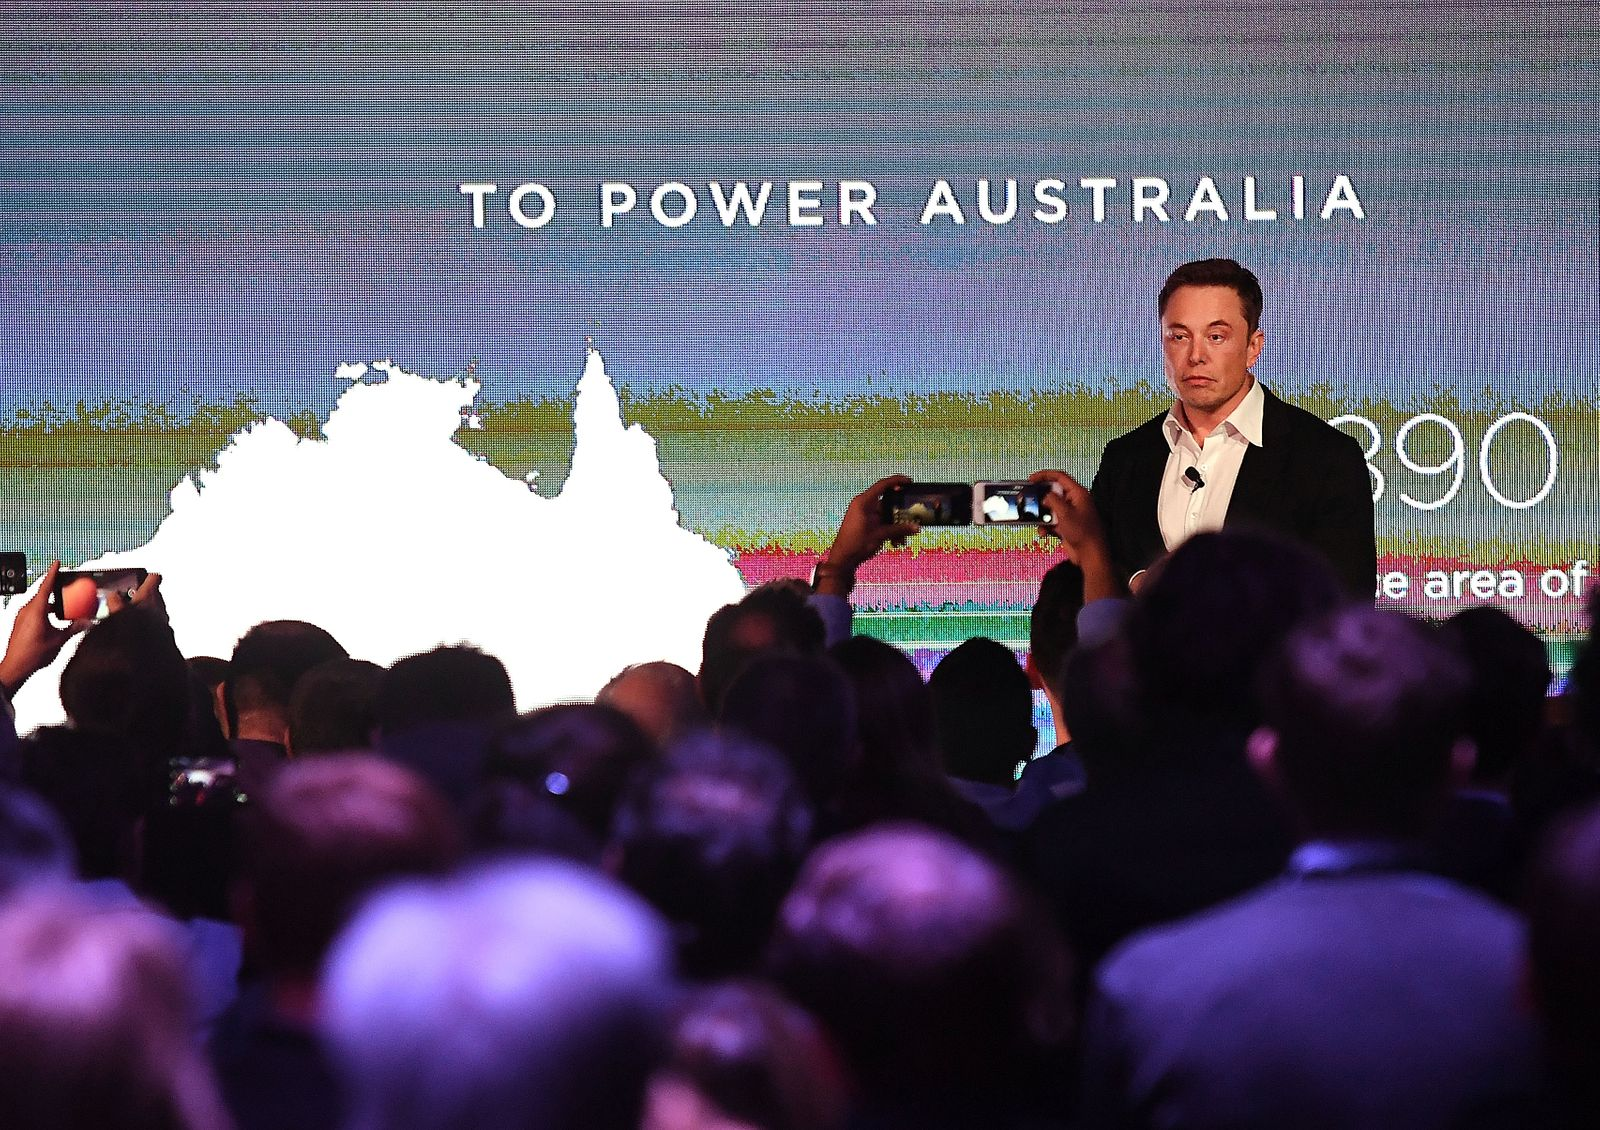 Elon Musk / Tesla Powerpack Launch